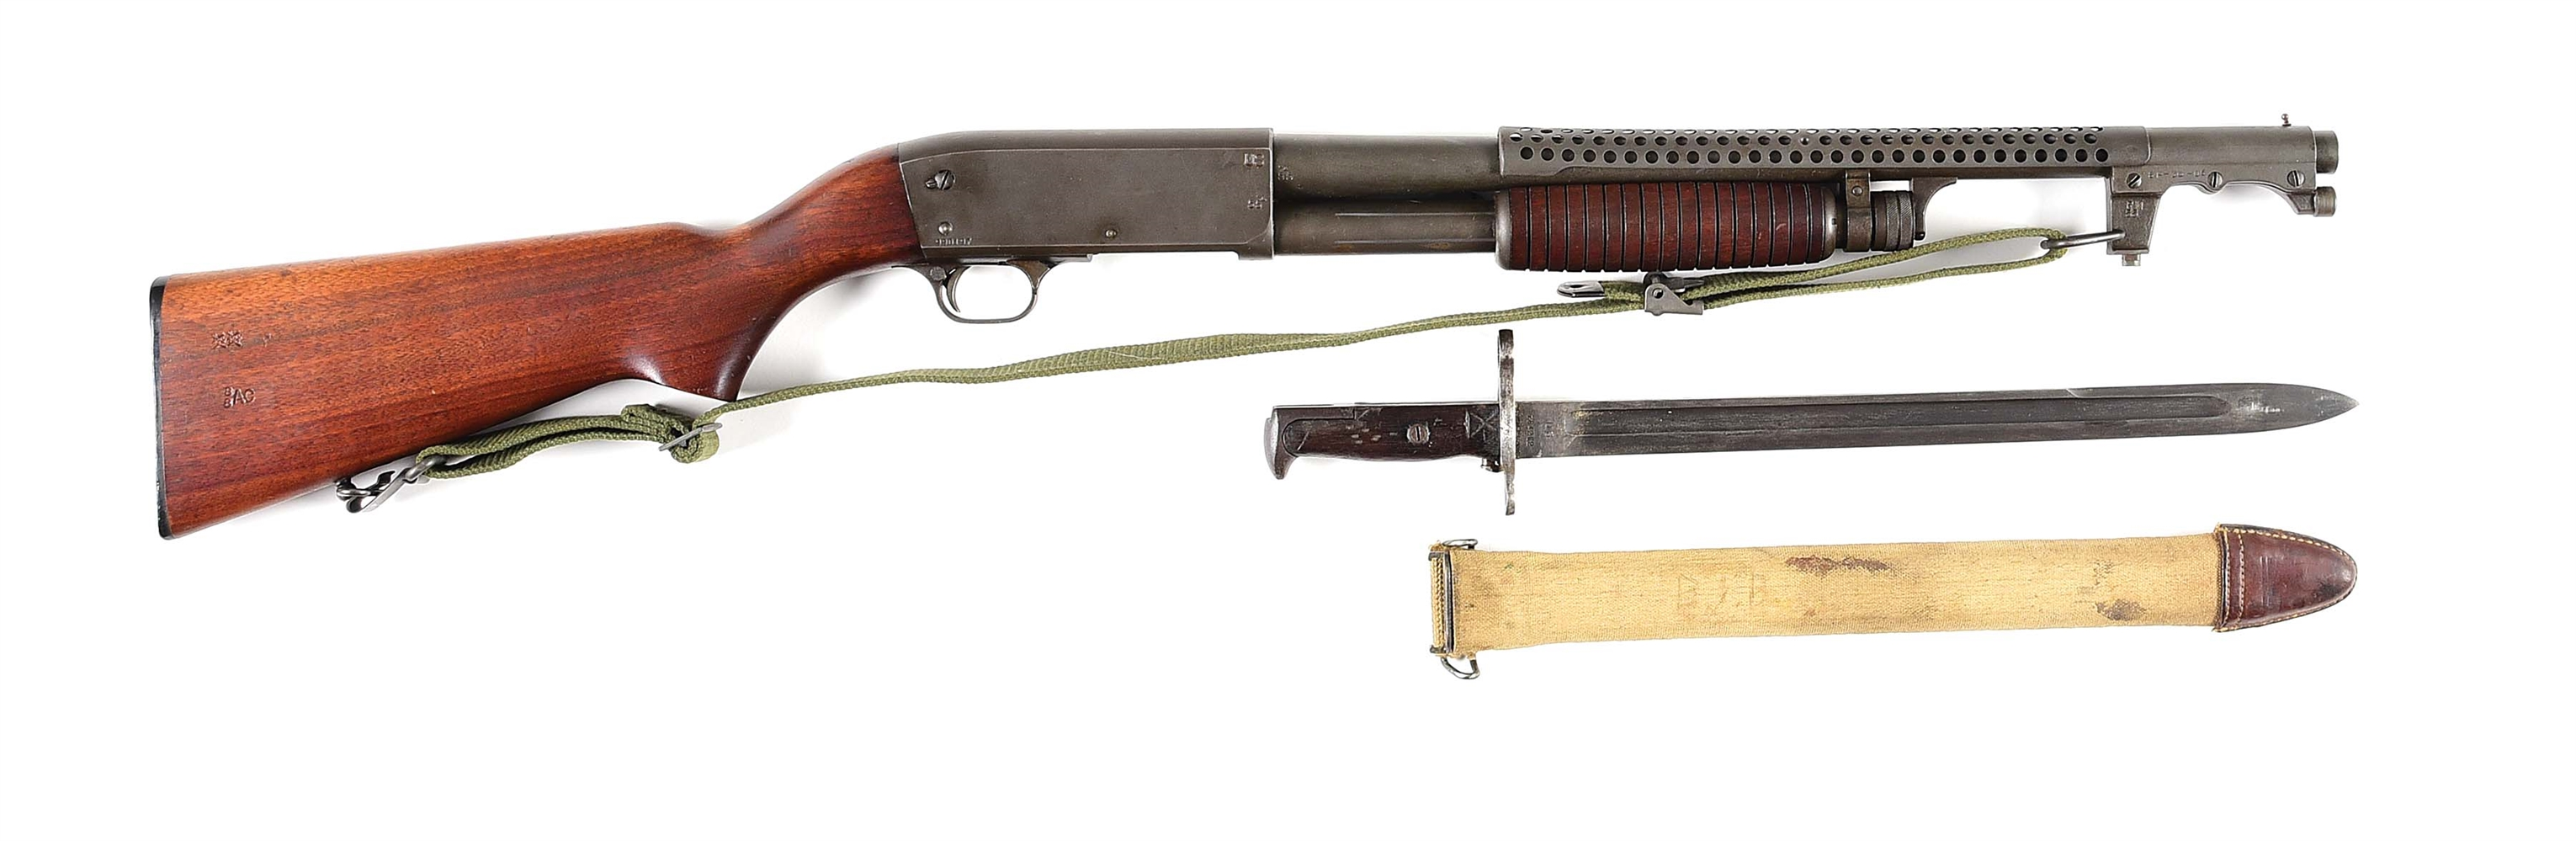 (C) ITHACA 37 TRENCH STYLE SLIDE ACTION SHOTGUN WITH BAYONET.